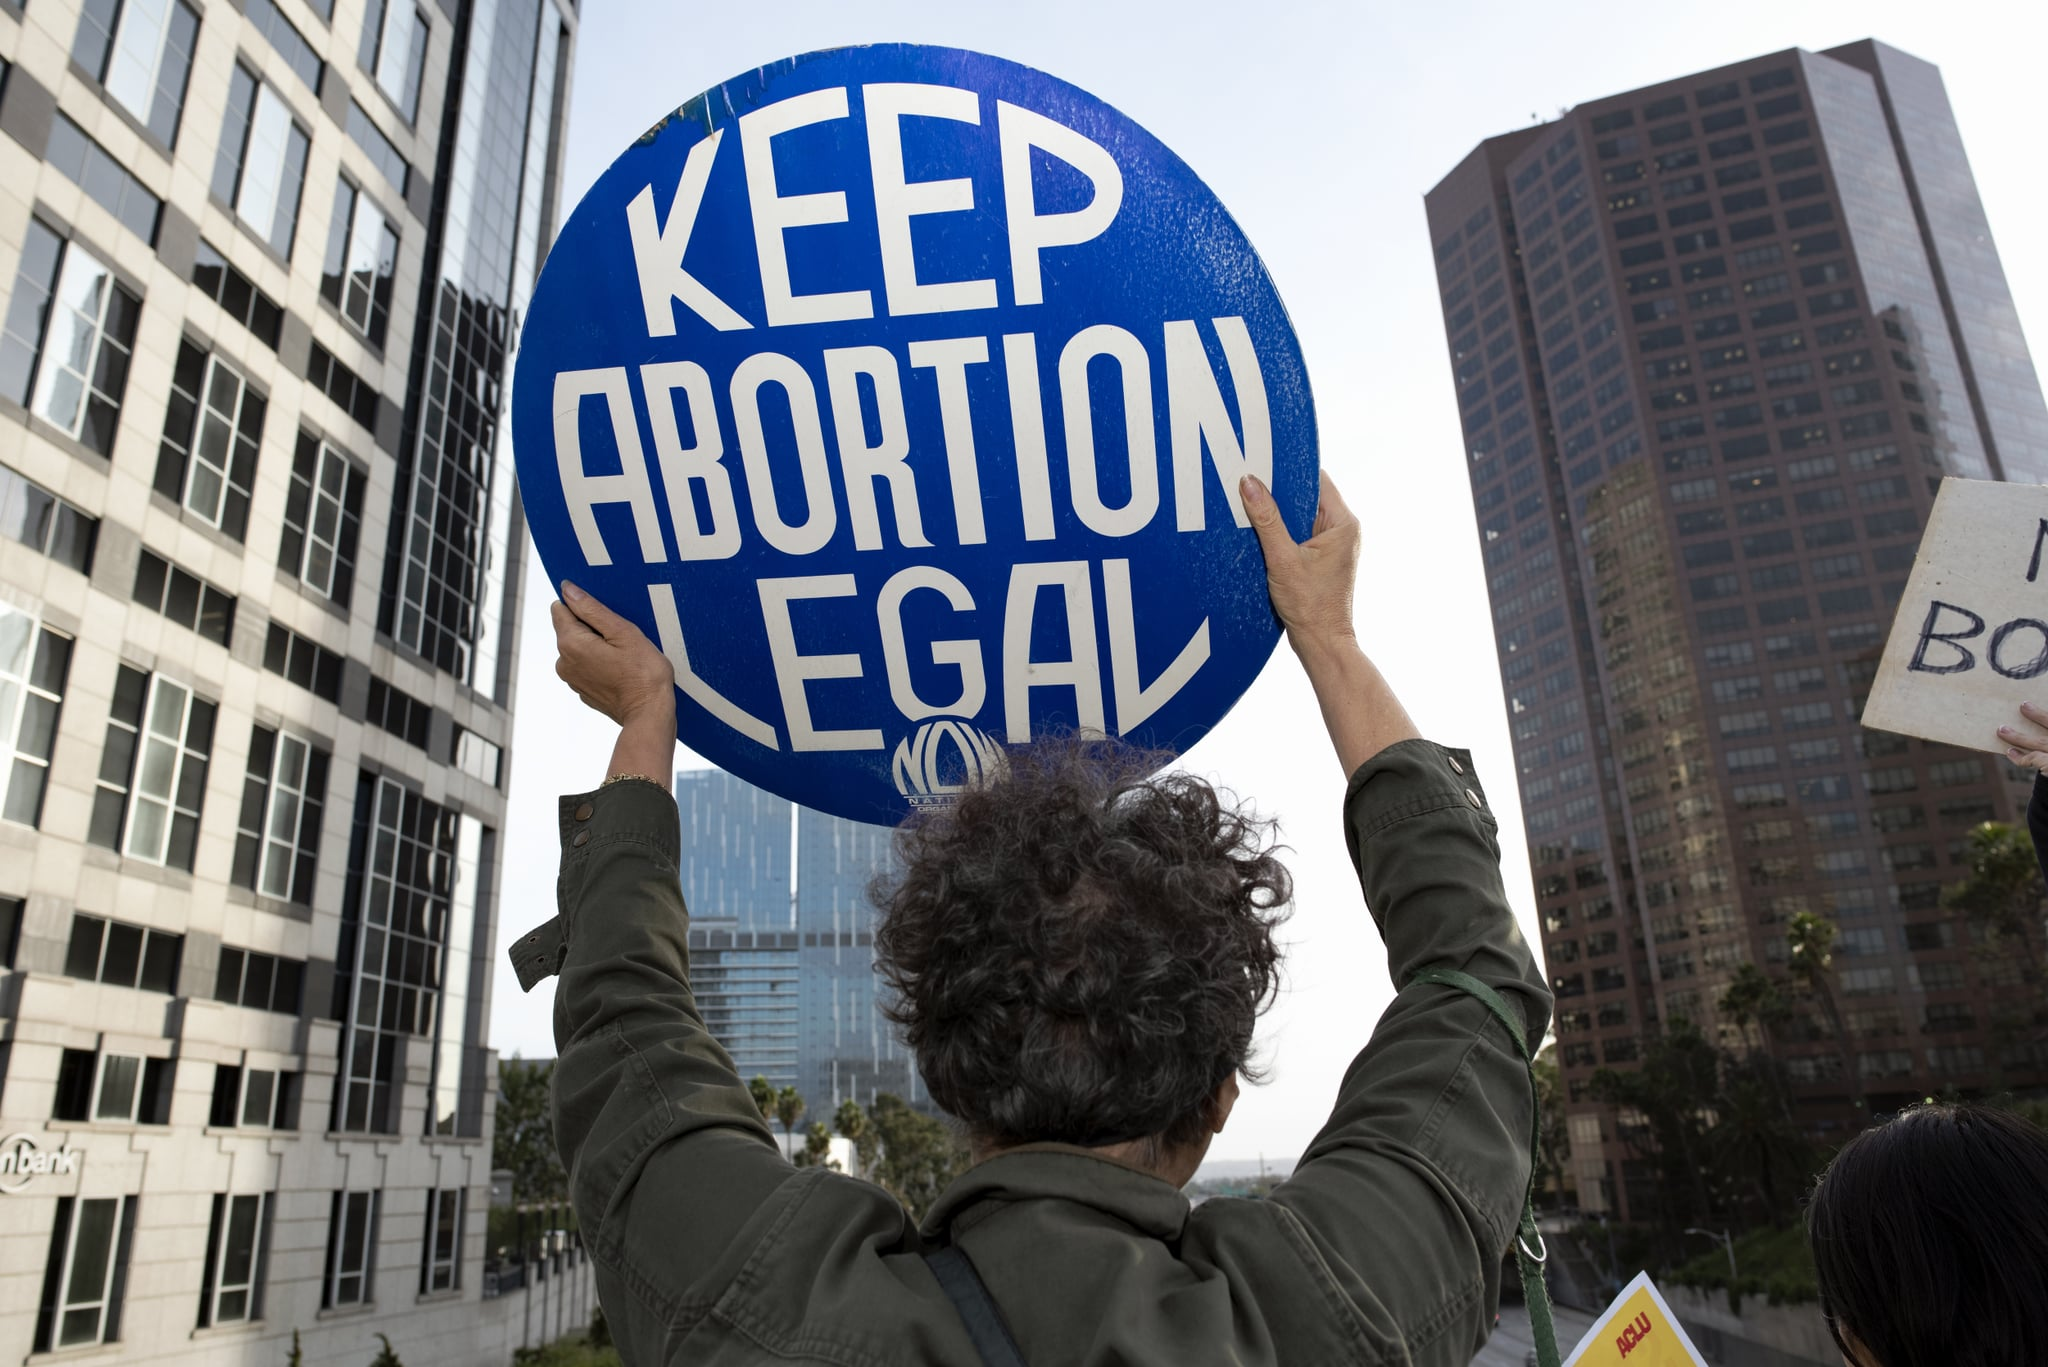 LOS ANGELES, CA, UNITED STATES - 2019/05/21: An activist seen holding a placard that says Keep Abortion Legal during the protest.Women rights activists protested against restrictions on abortions after Alabama passed the most restrictive abortion bans in the US. Similar Stop the Bans Day of Action for Abortion Rights rallies were held across the nation. (Photo by Ronen Tivony/SOPA Images/LightRocket via Getty Images)